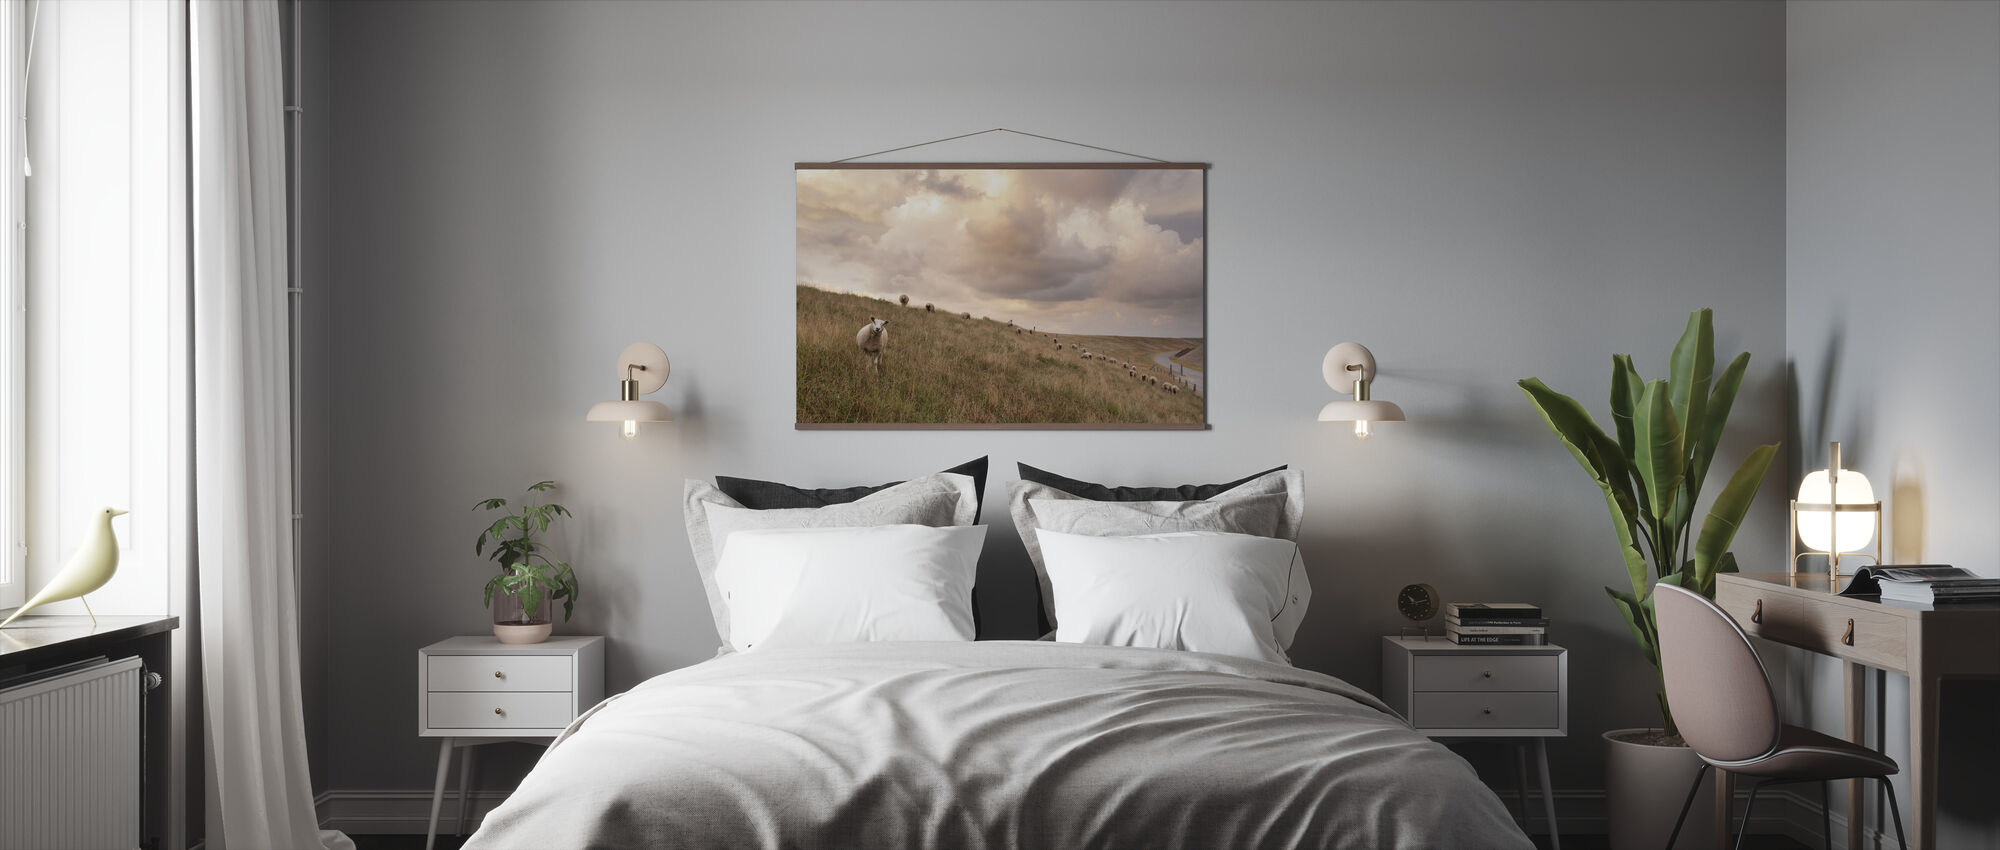 Attentive Sheep - Poster - Bedroom